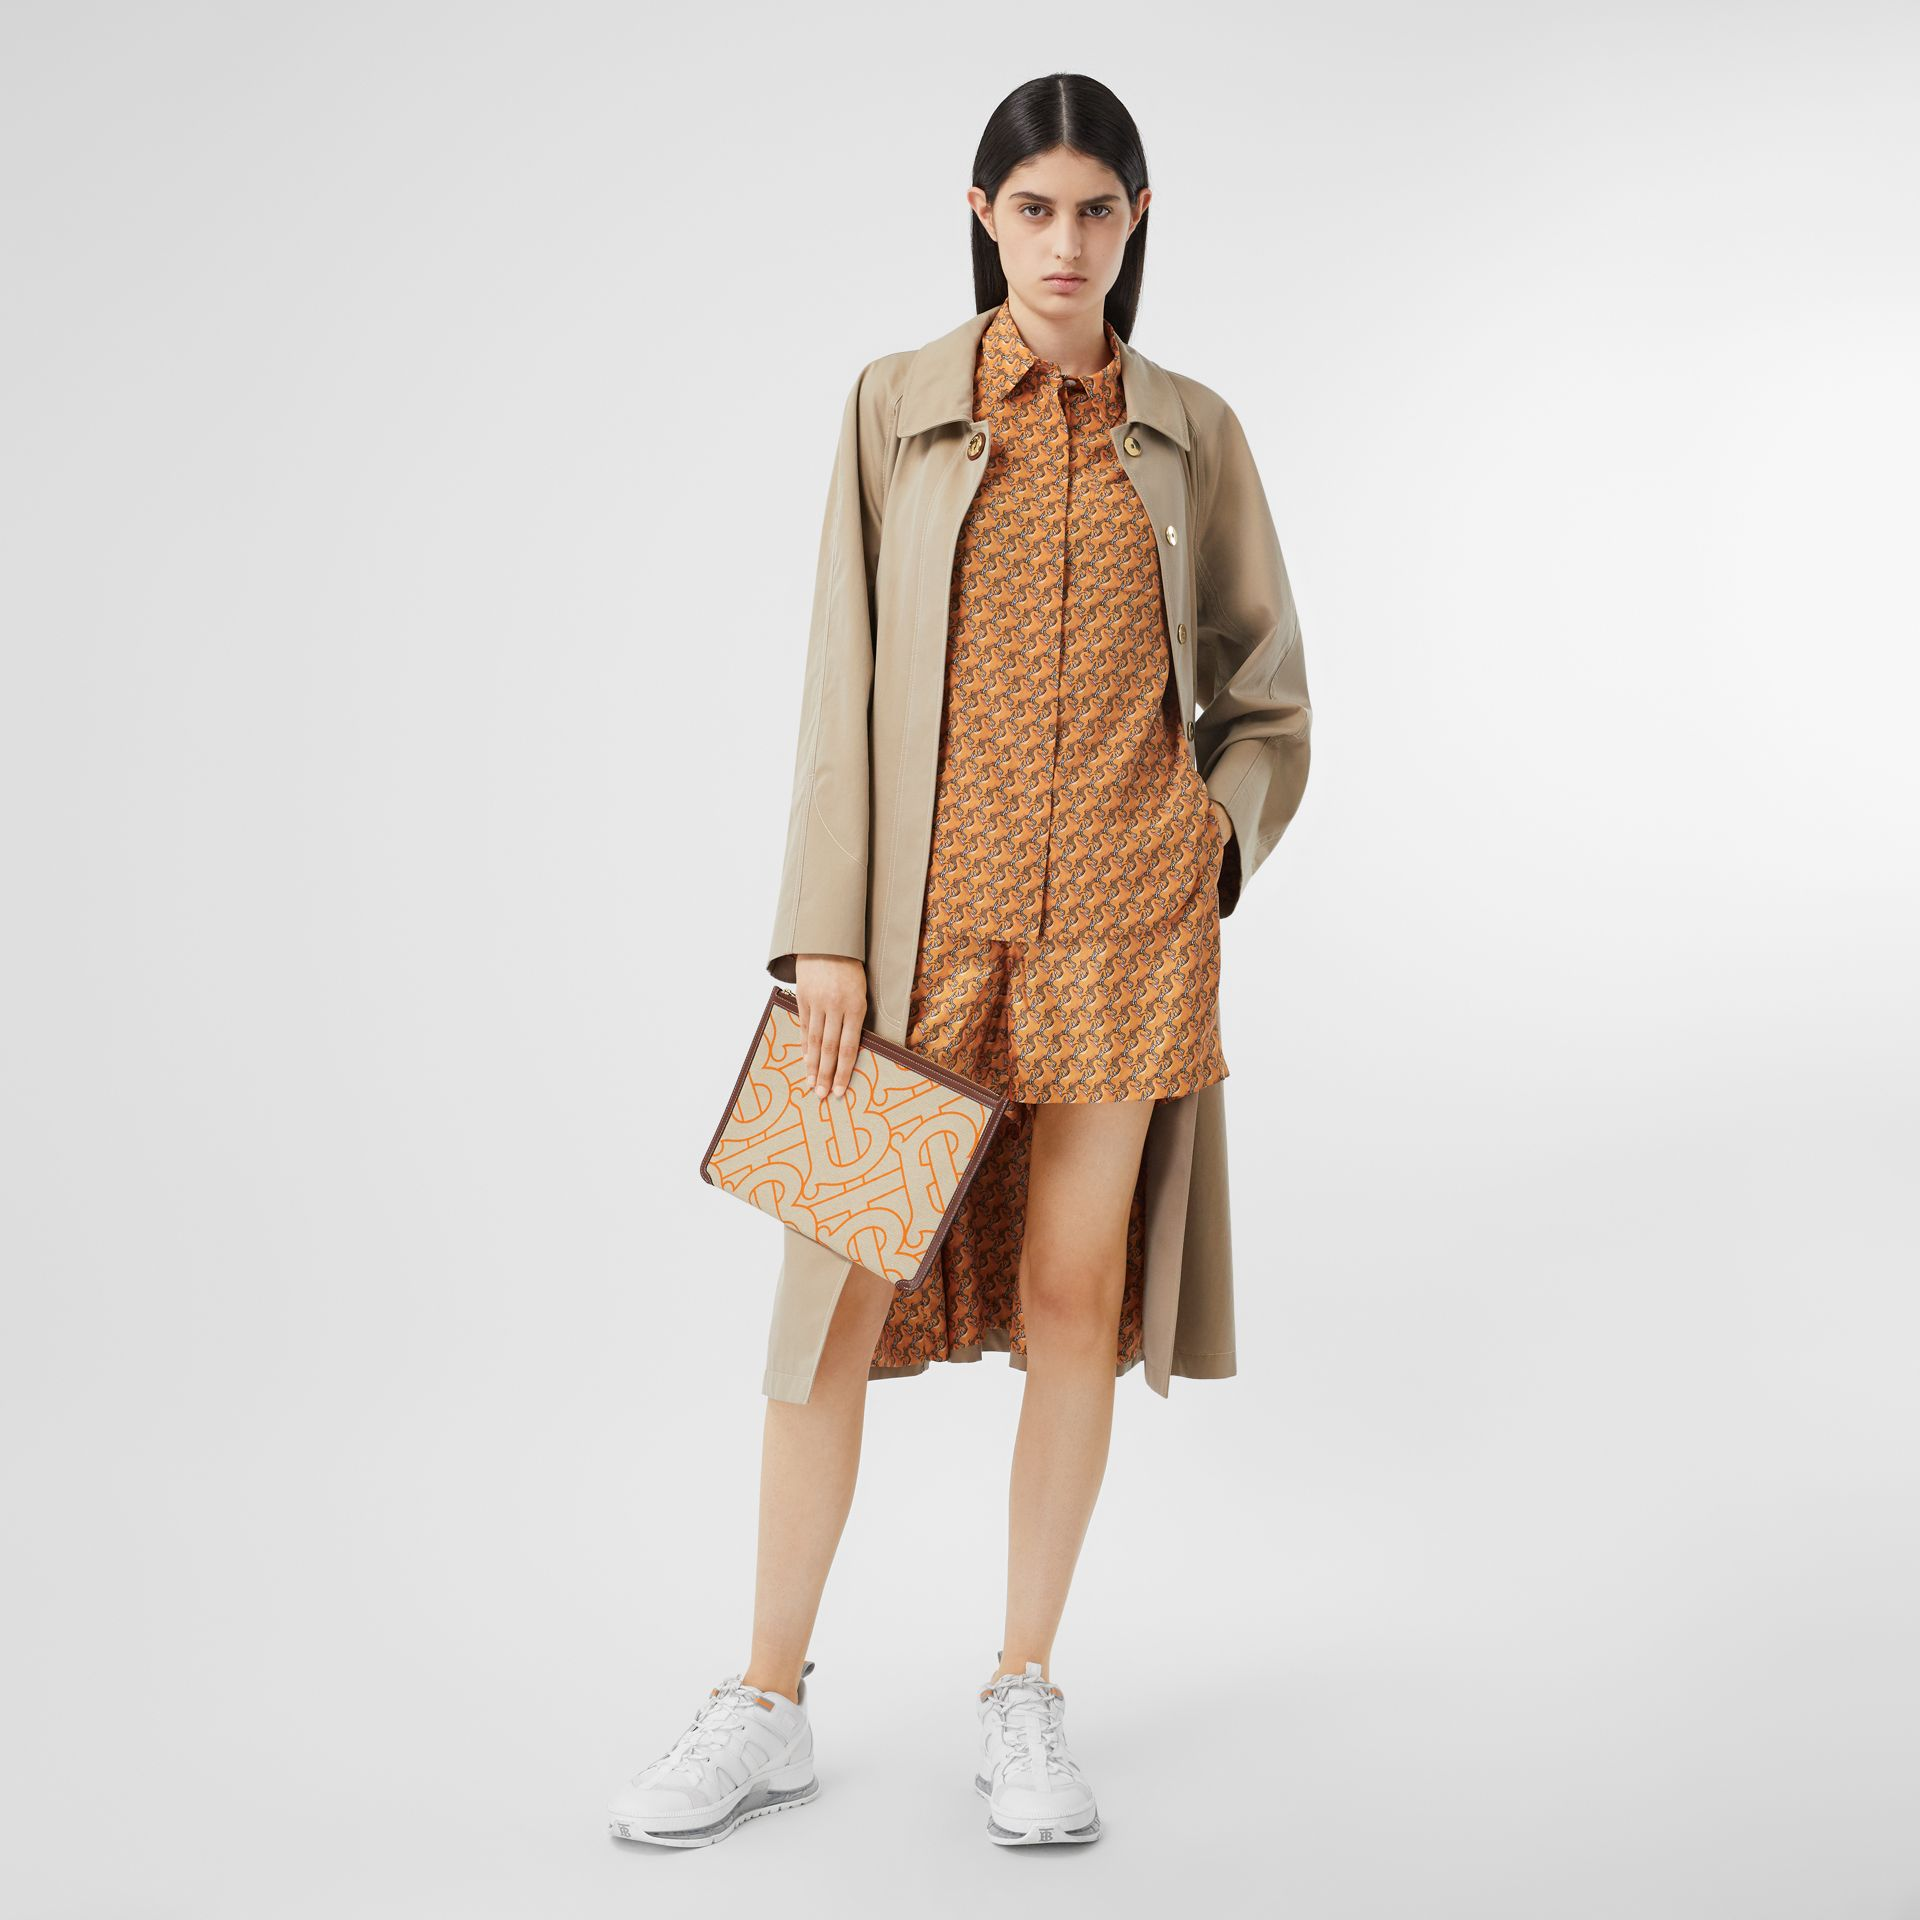 Monogram Motif Canvas and Leather Pouch in Natural/orange - Women | Burberry United Kingdom - gallery image 4